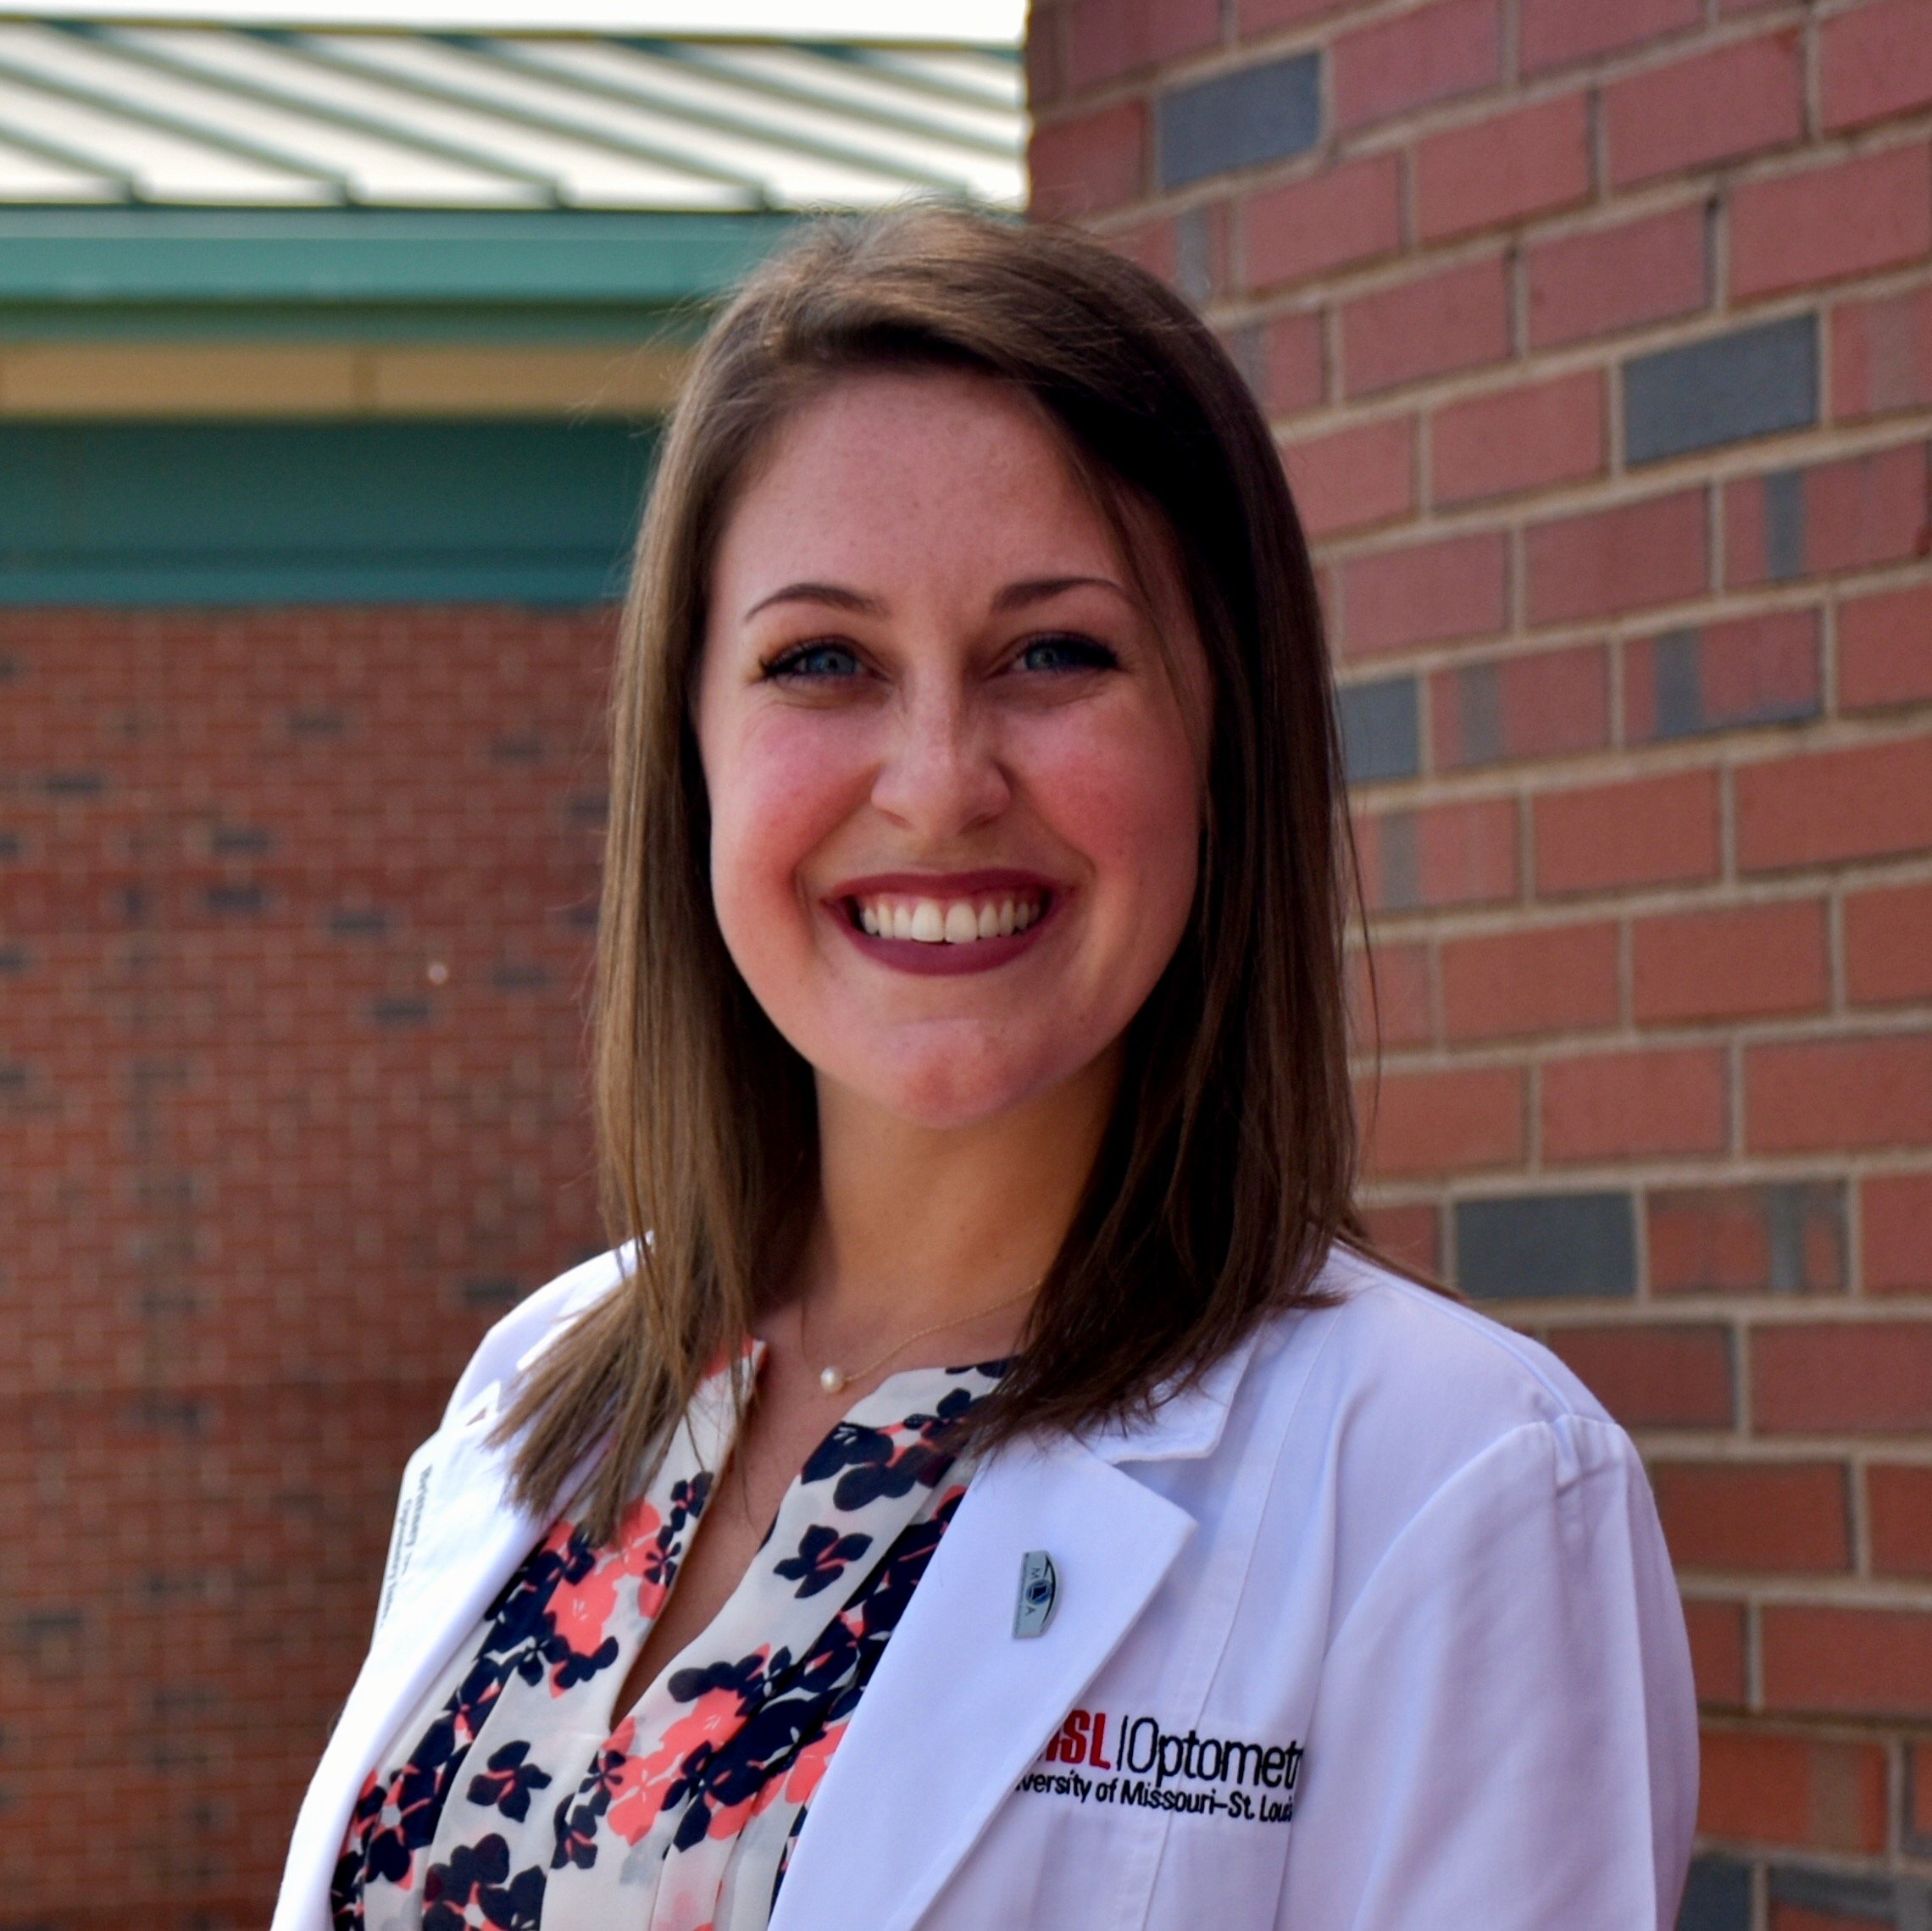 Brittney Schieber, a third-year student at the University of Missouri-St. Louis College of Optometry.